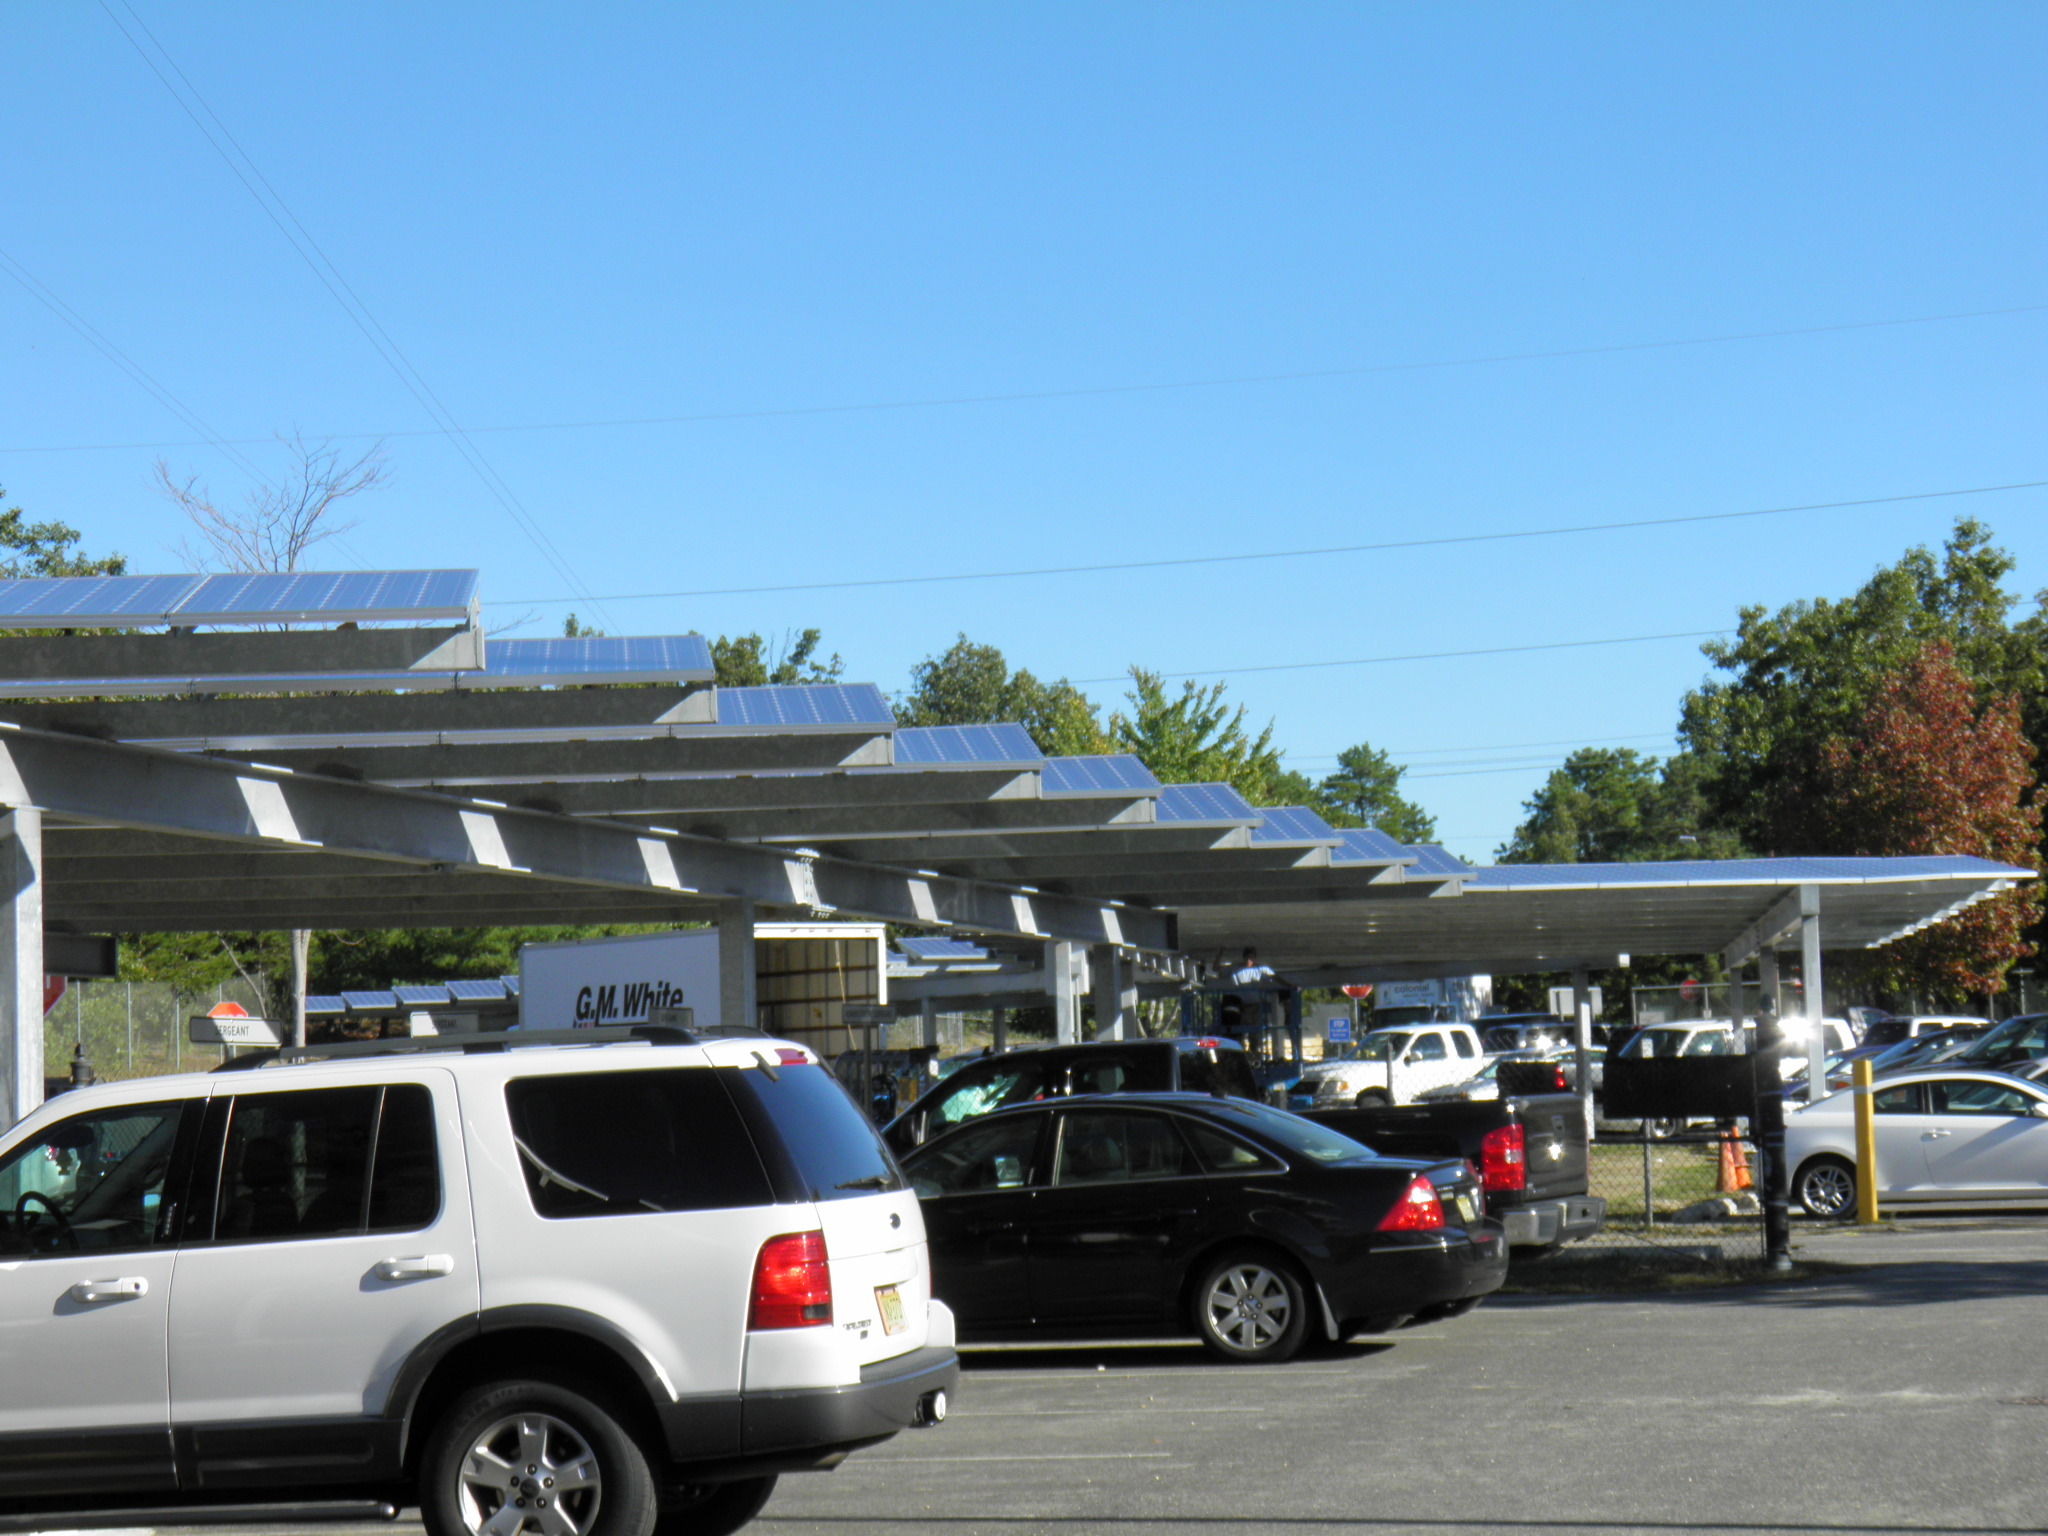 AC Jail Solar Carport 1.JPG